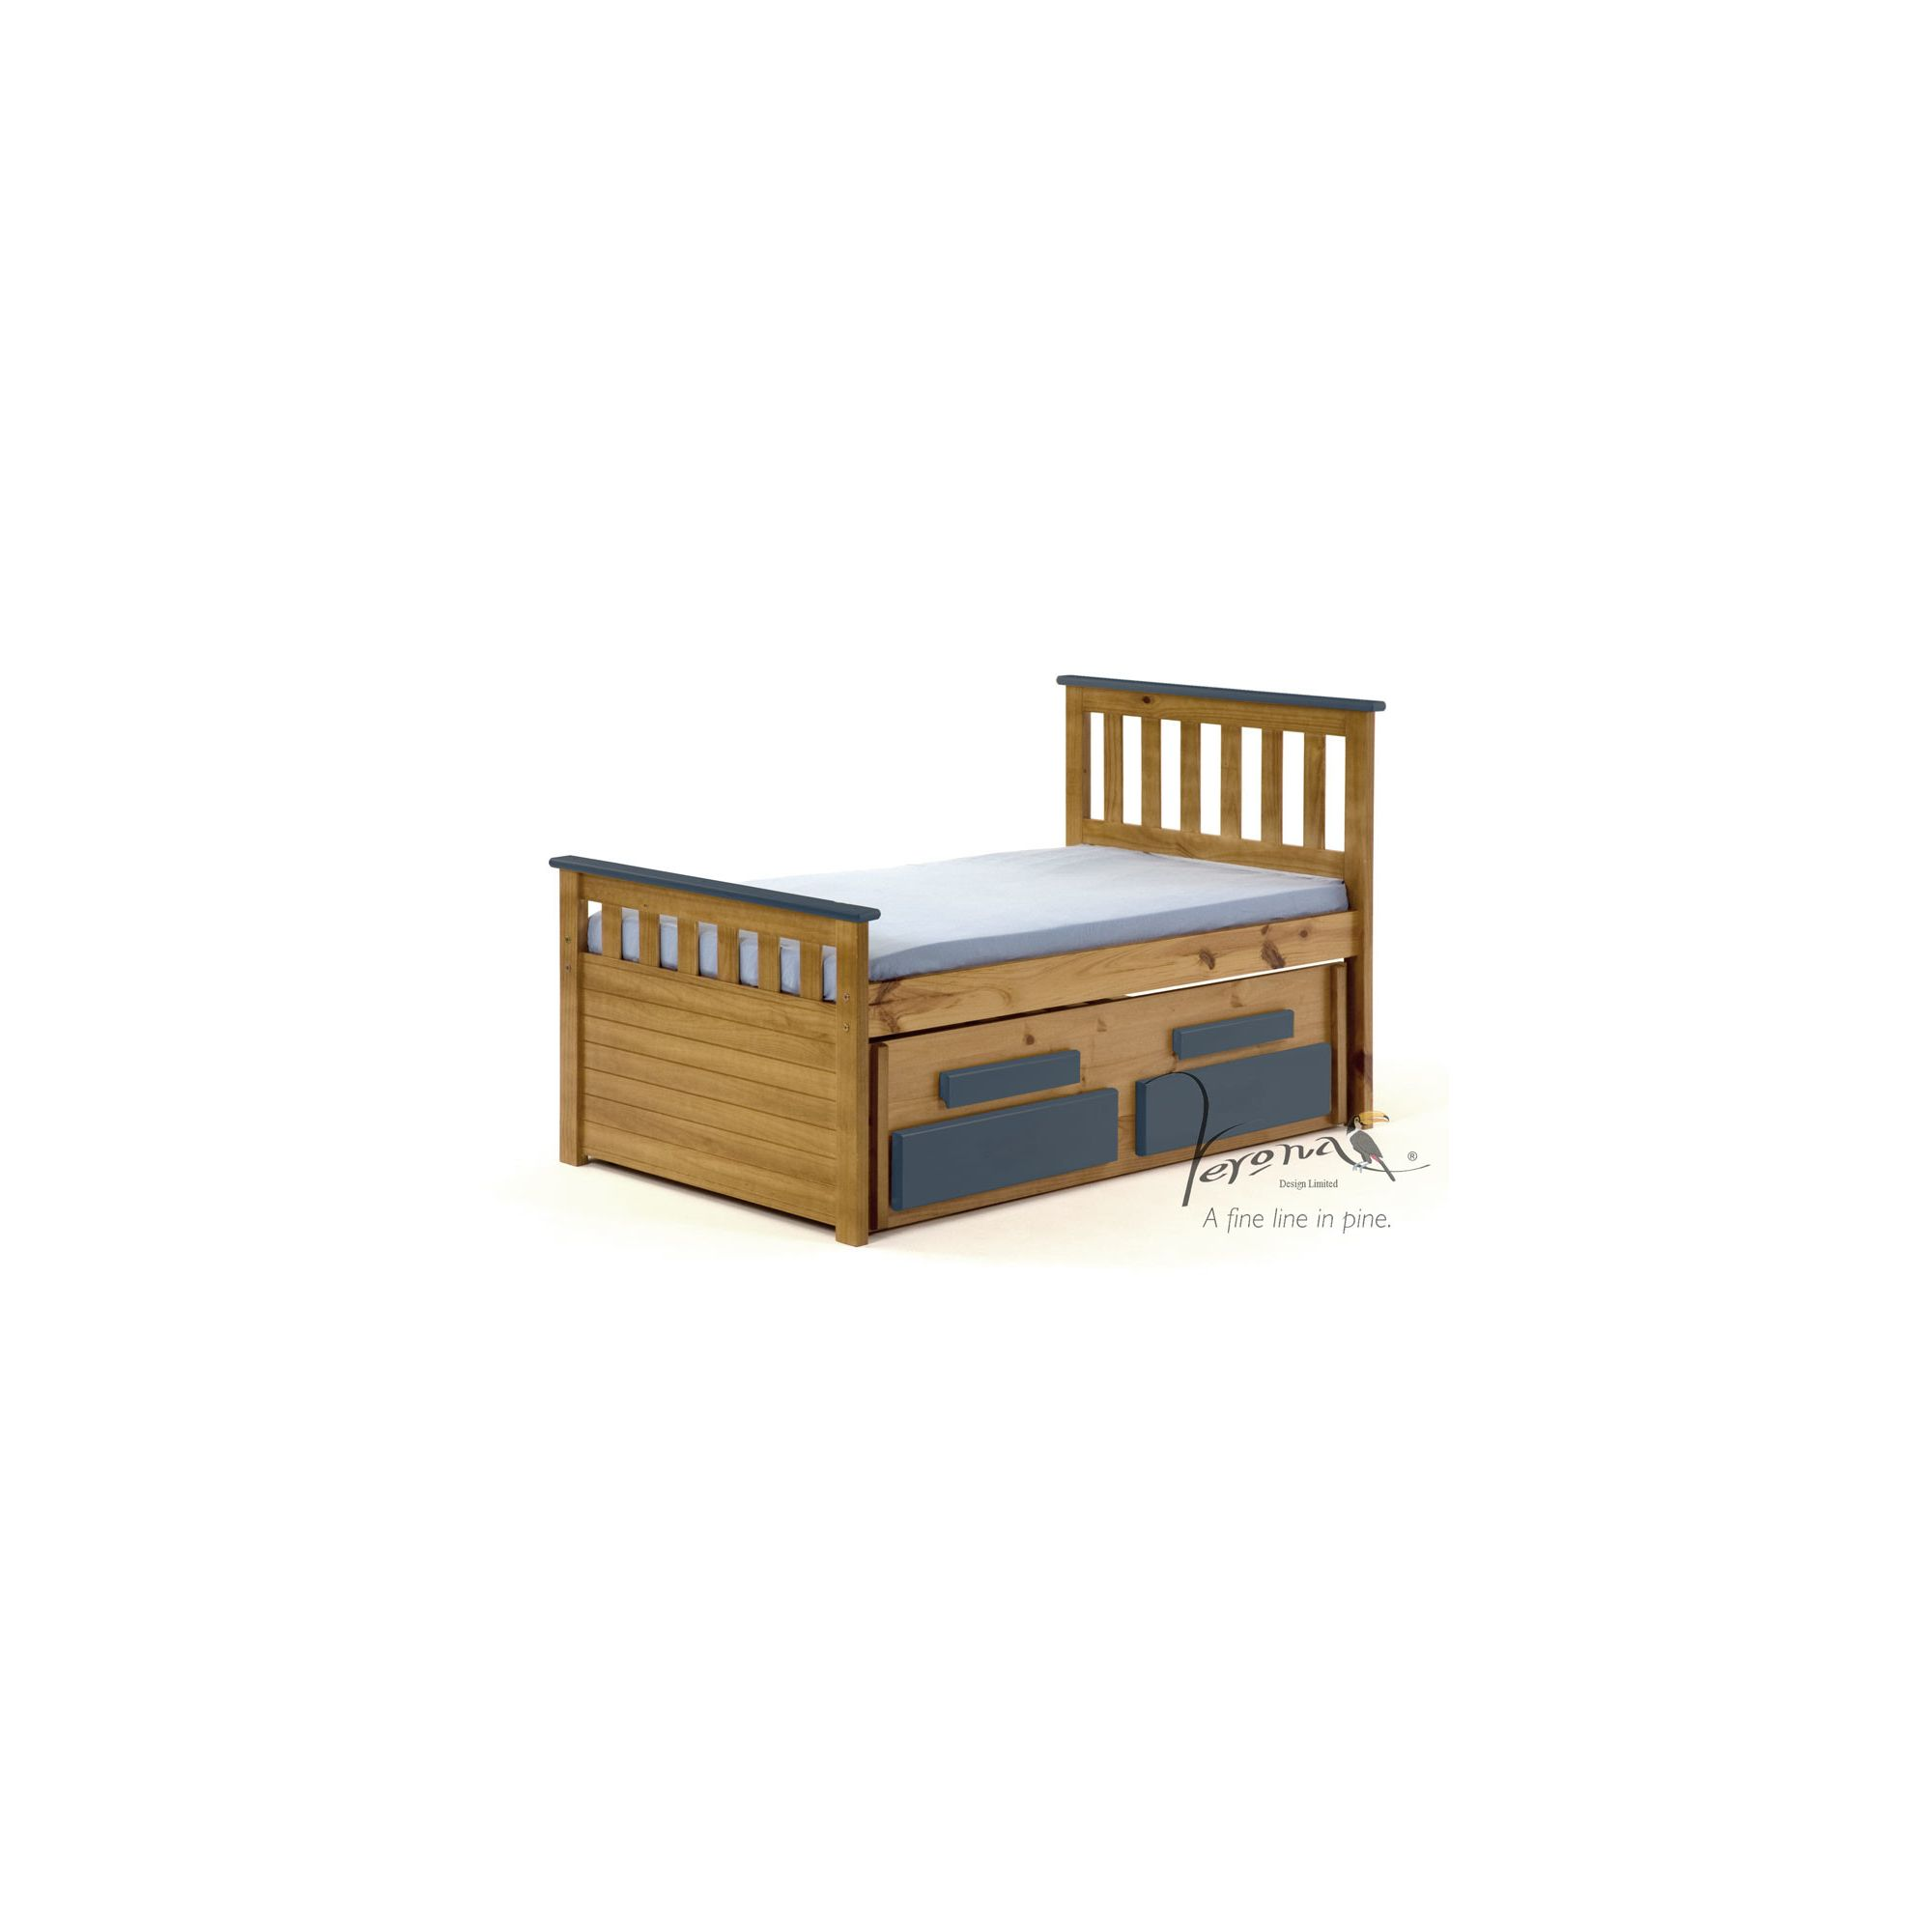 Verona Bergamo Kids Captains Bed with guest bed - Antique Blue at Tesco Direct